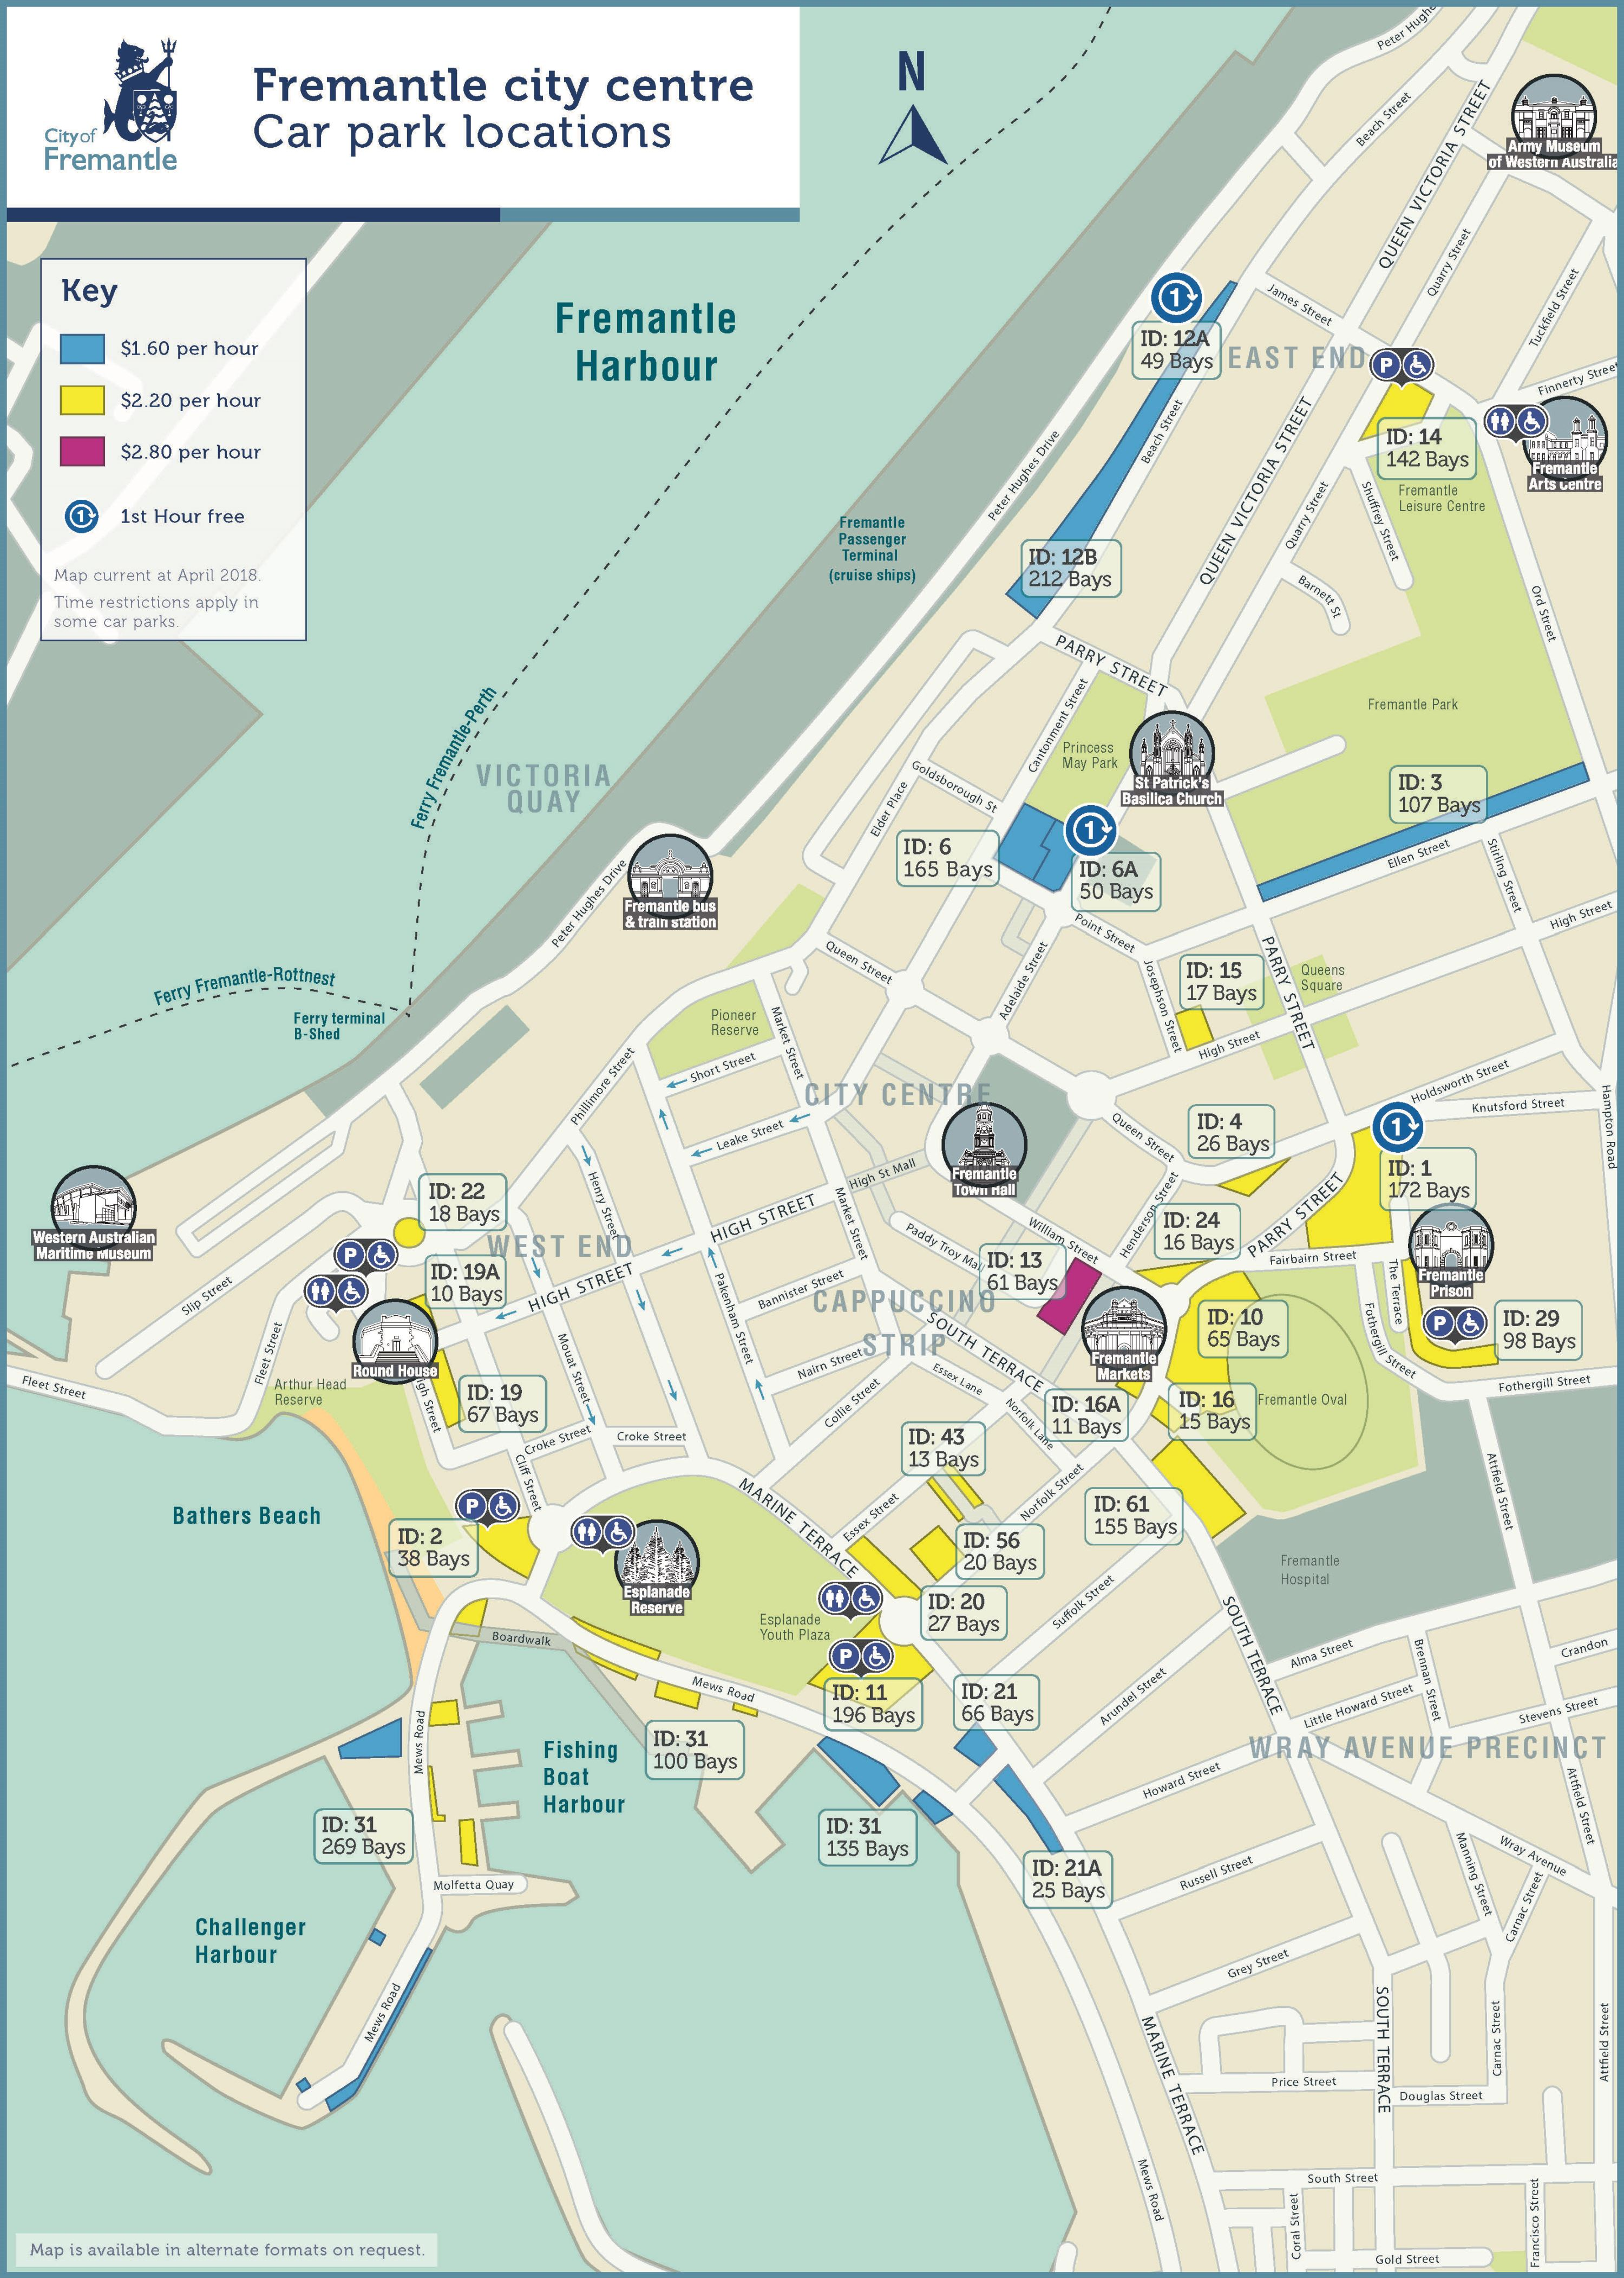 City centre parking map